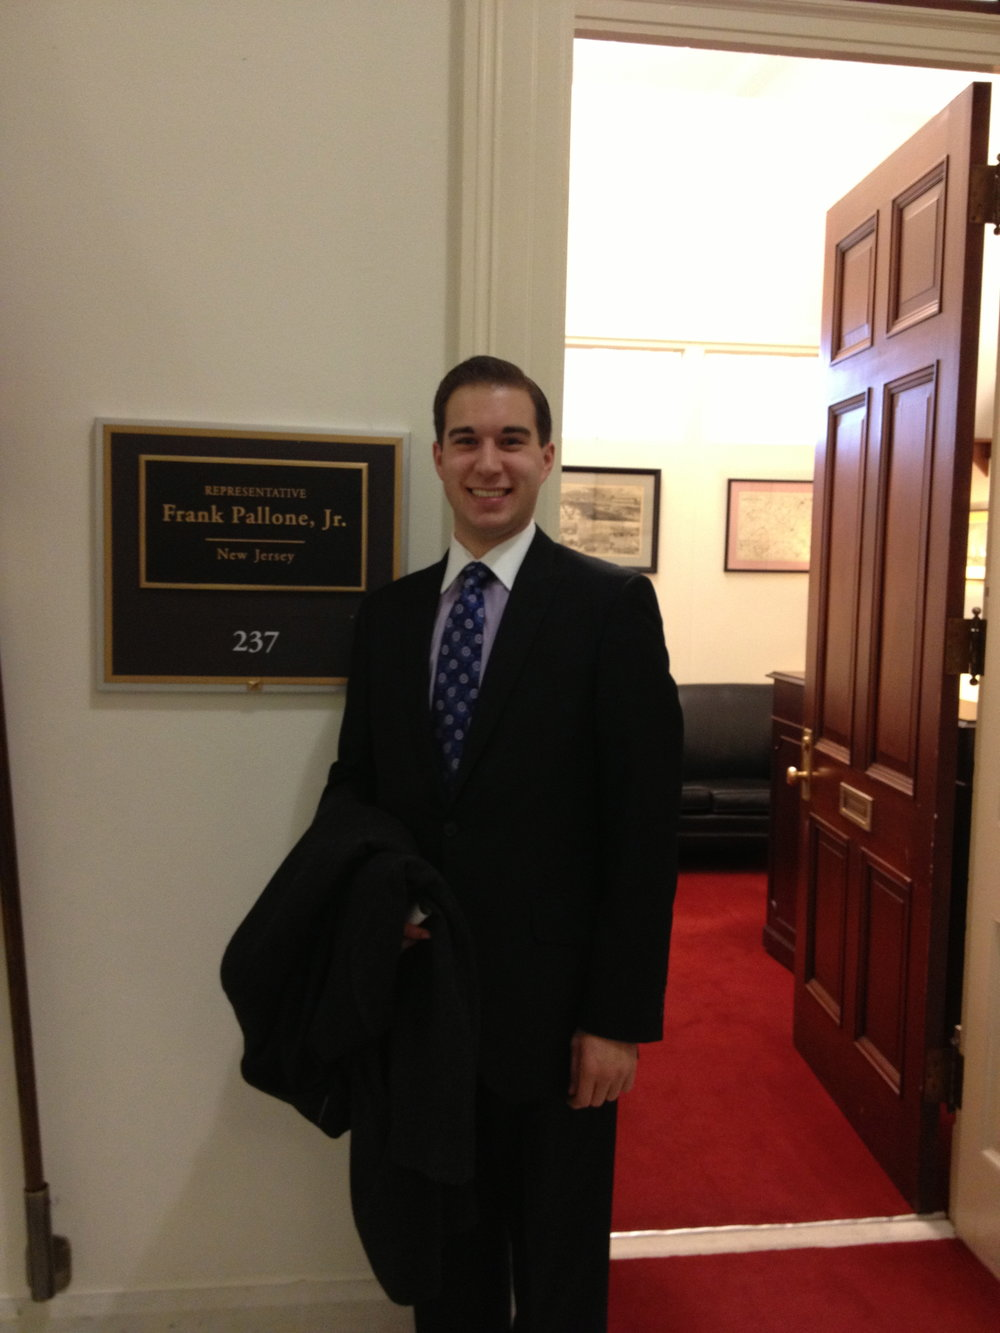 Office of Congressman Frank Pallone (D-NJ), July 2013